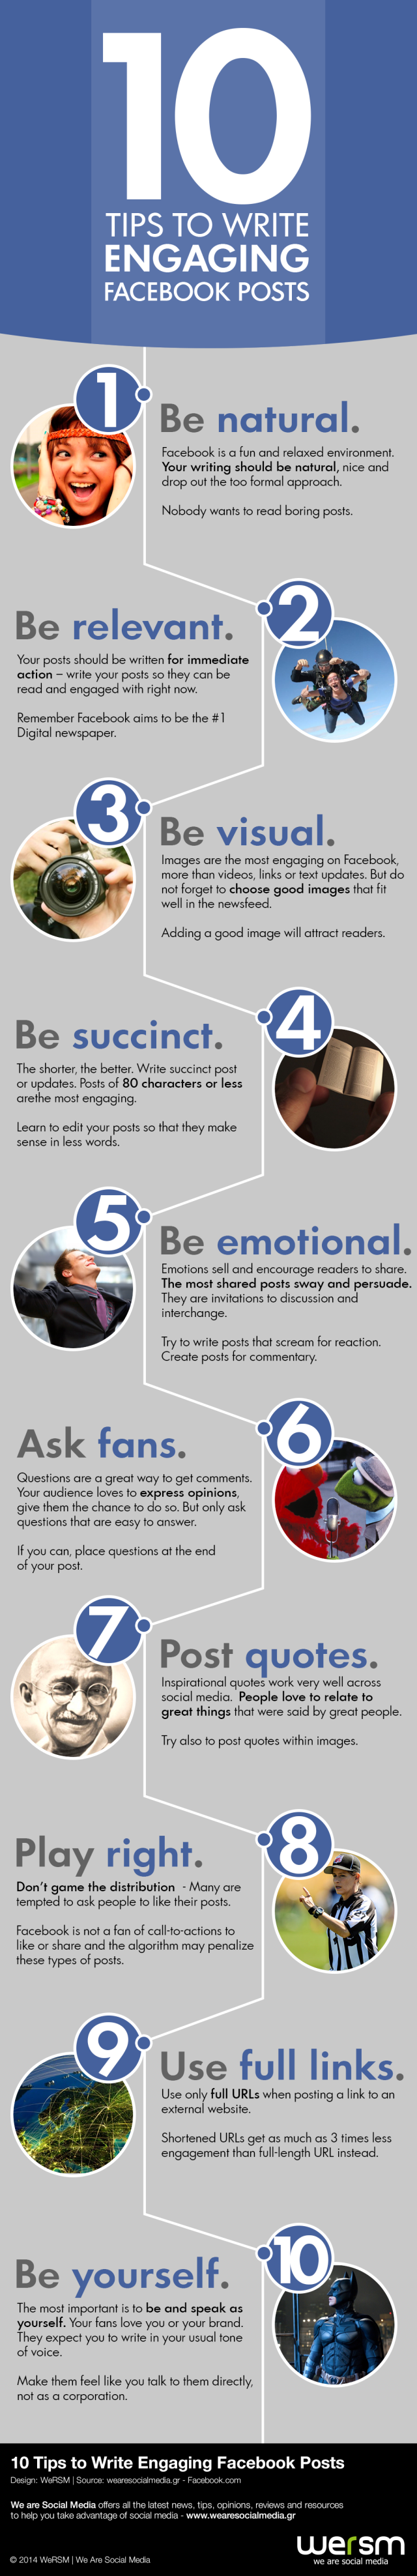 wersm_infographic_tips_engaging_facebook